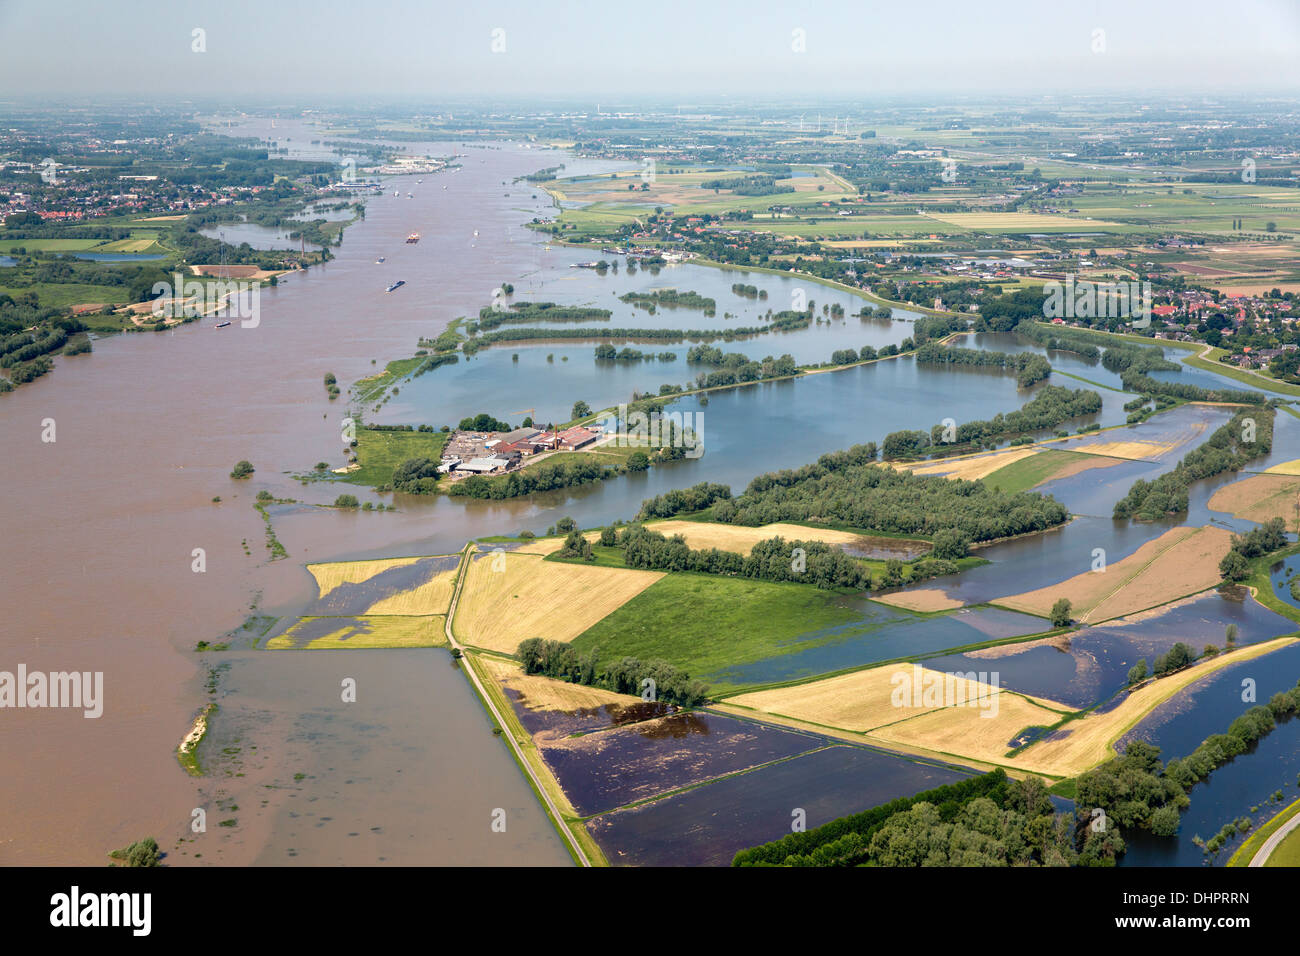 Netherlands, Dodewaard. Waal river. Flood plains. Flooded land. Construction company. Aerial Stock Photo